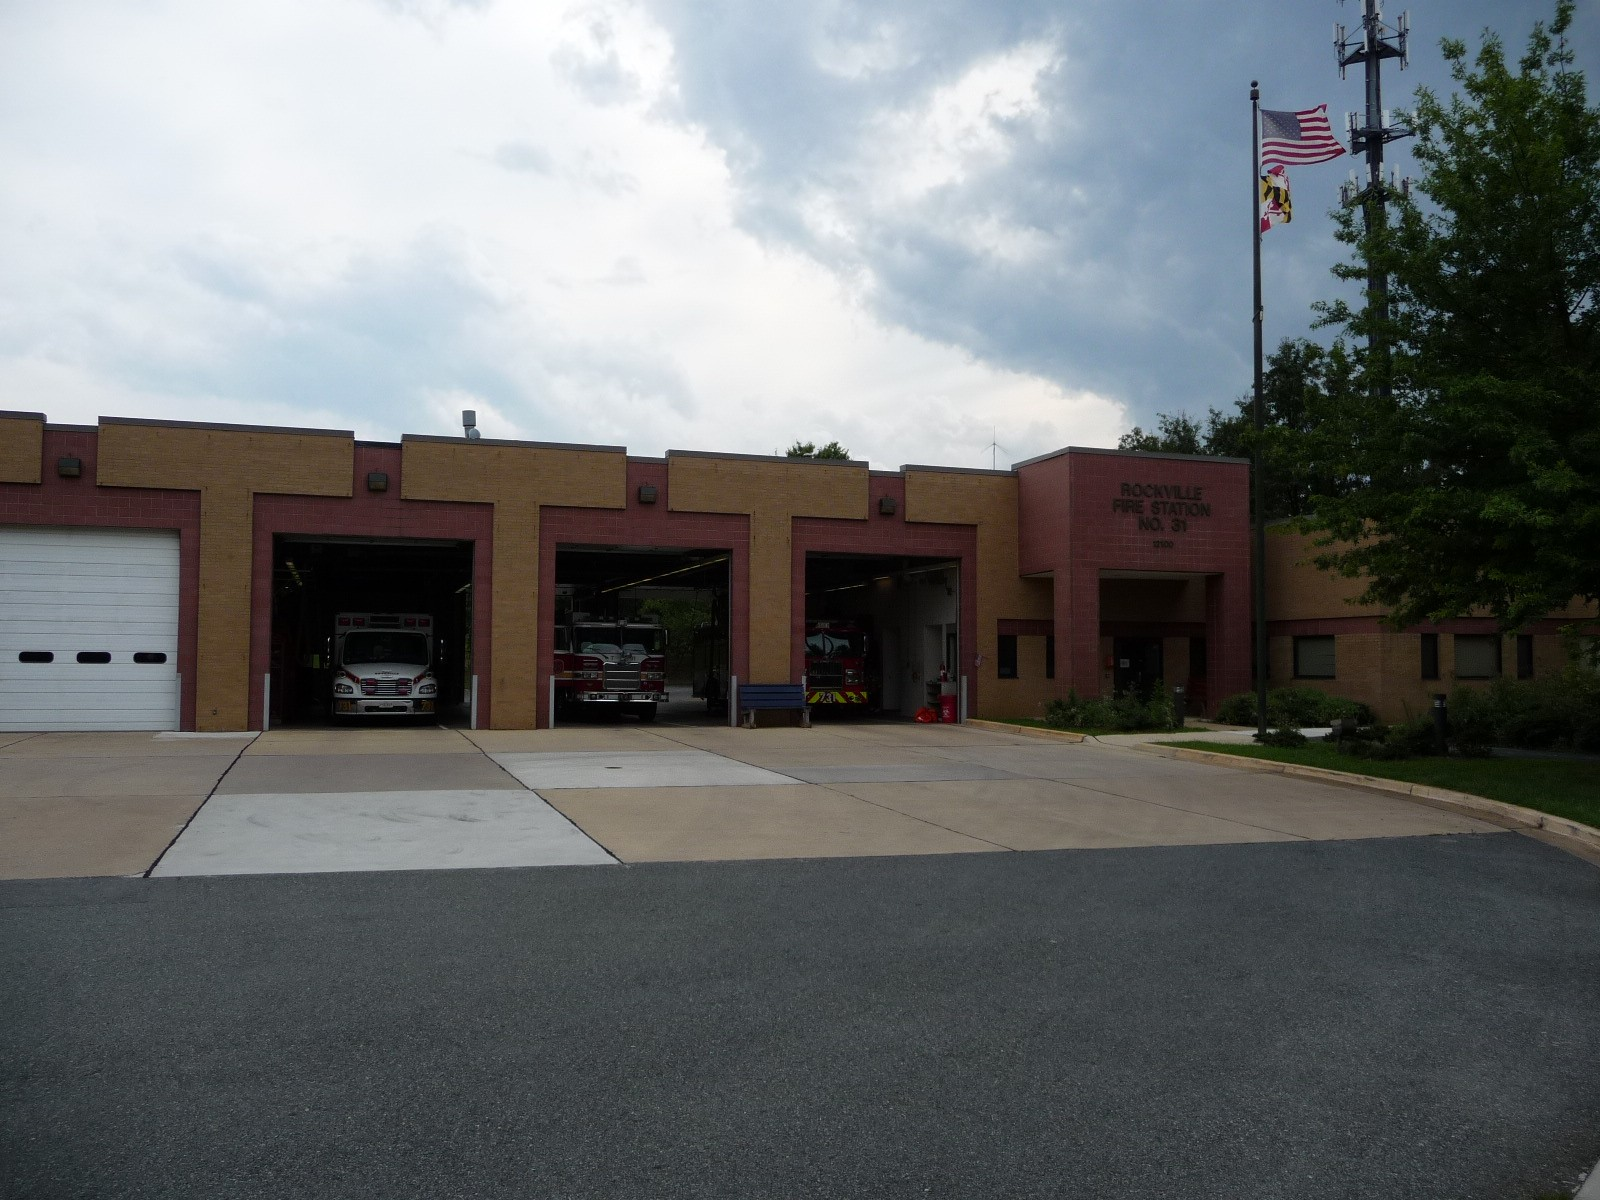 Fire Station 31